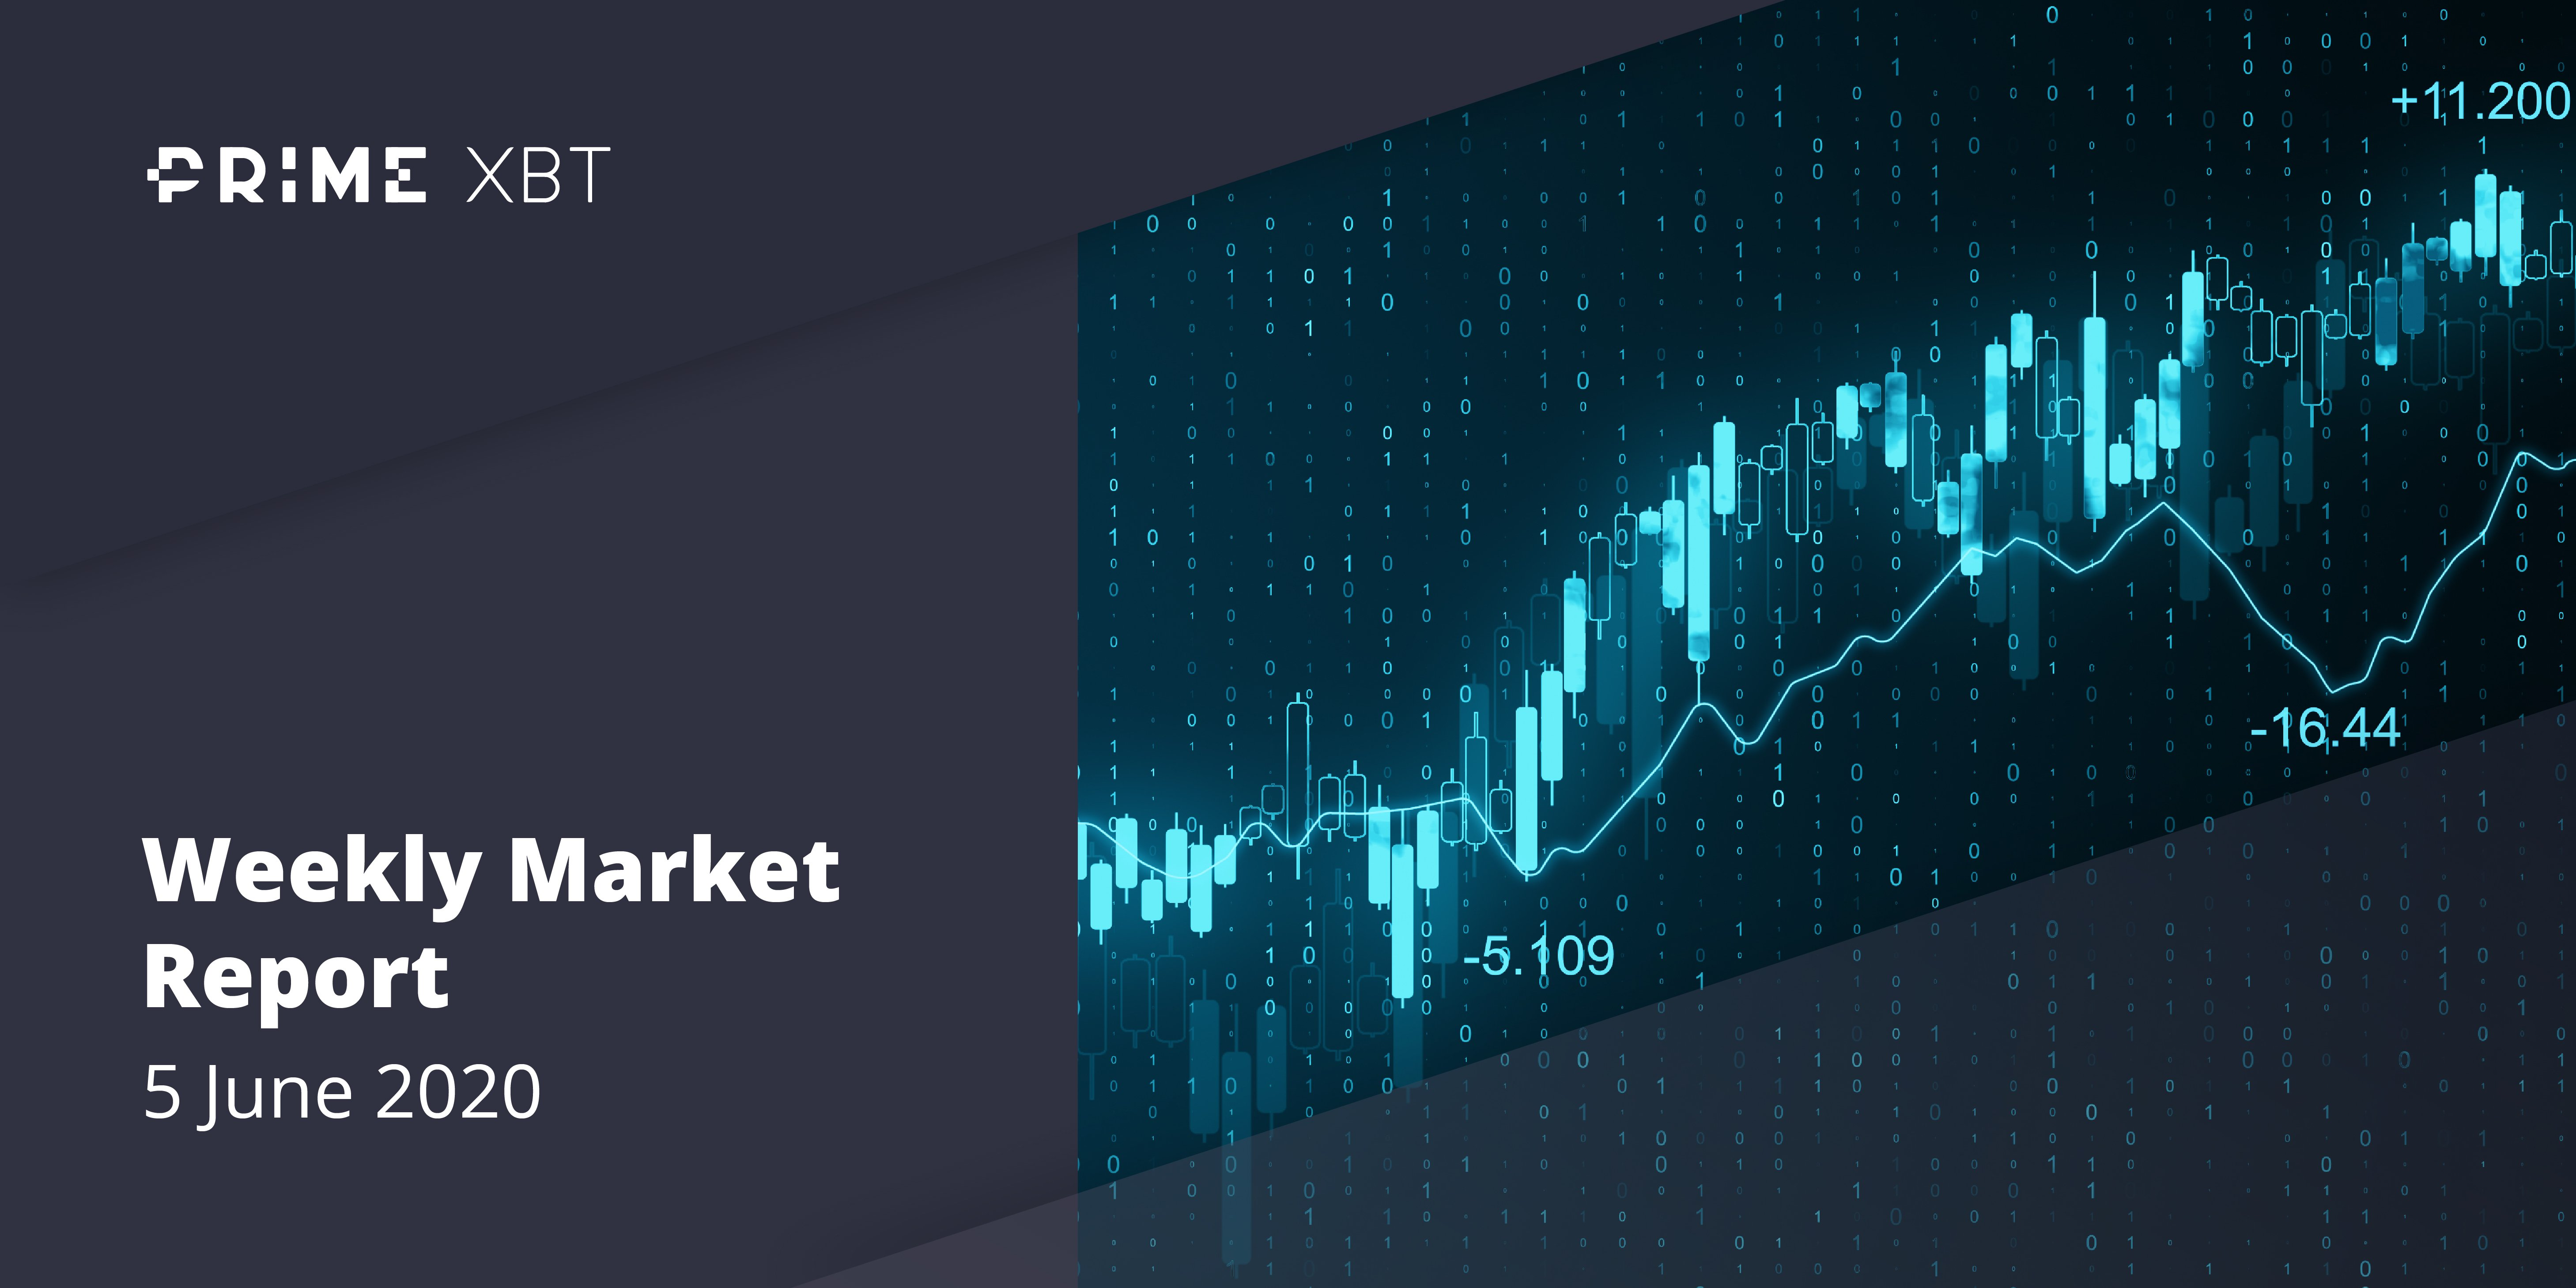 Crypto Market Report: Ethereum Stars While Bitcoin Posts Gains, High Leverage and Low Liquidity still and Issue as Greed Returns - 5.06.20